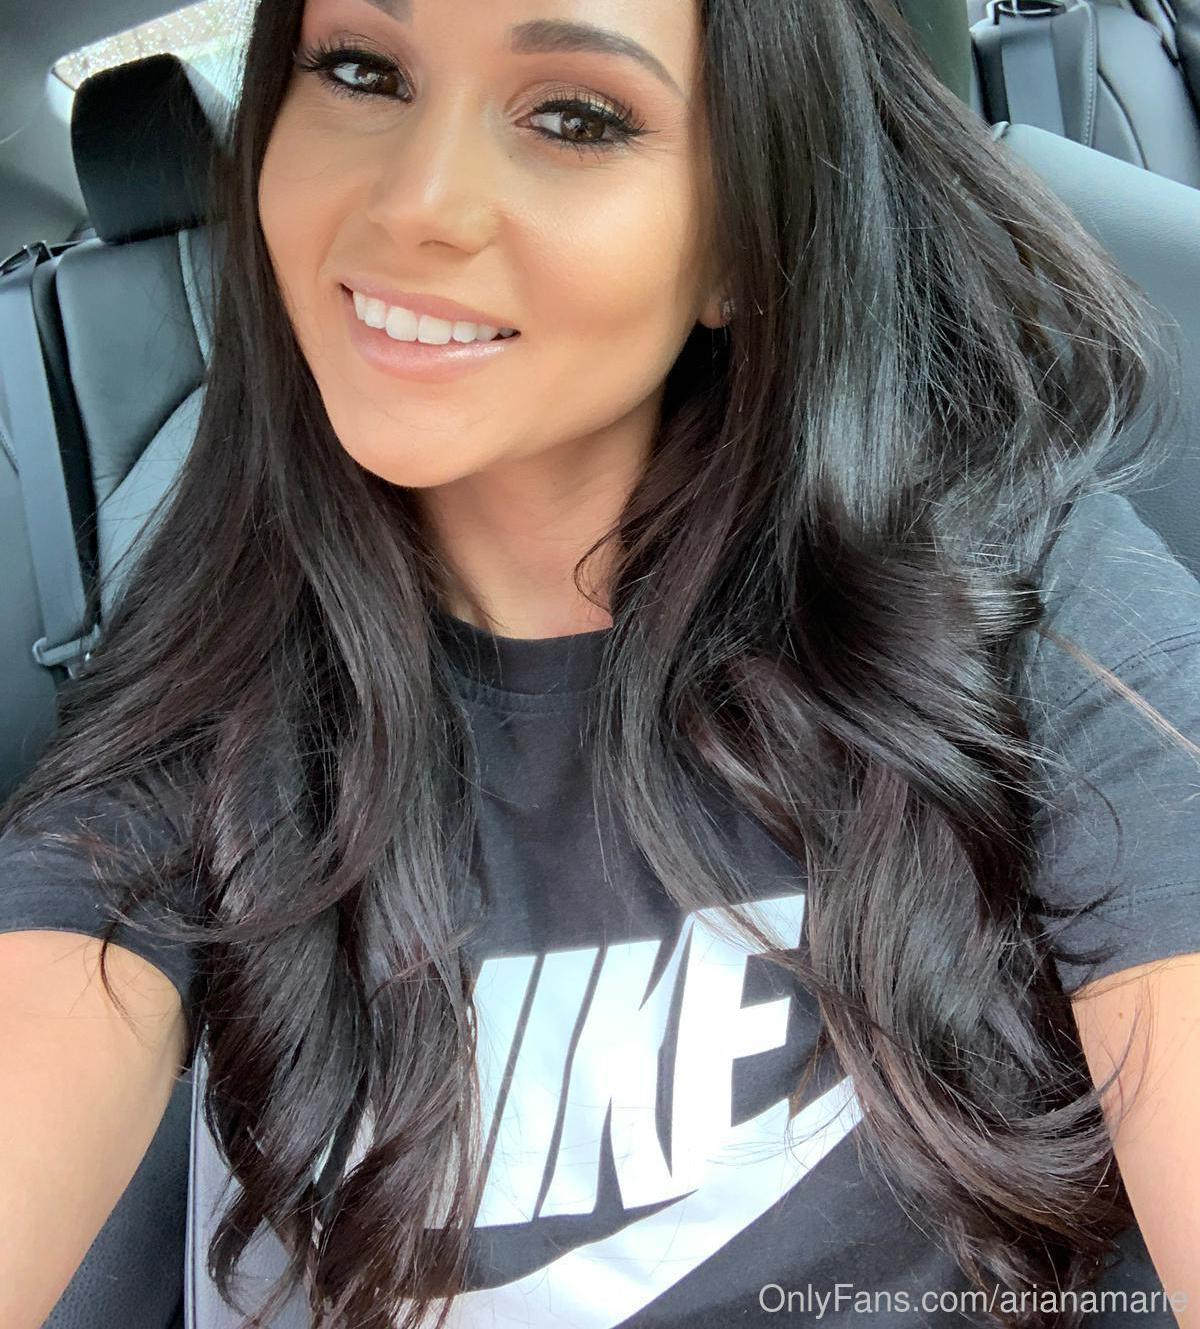 Arianamarie Onlyfans Leaked Content 0023